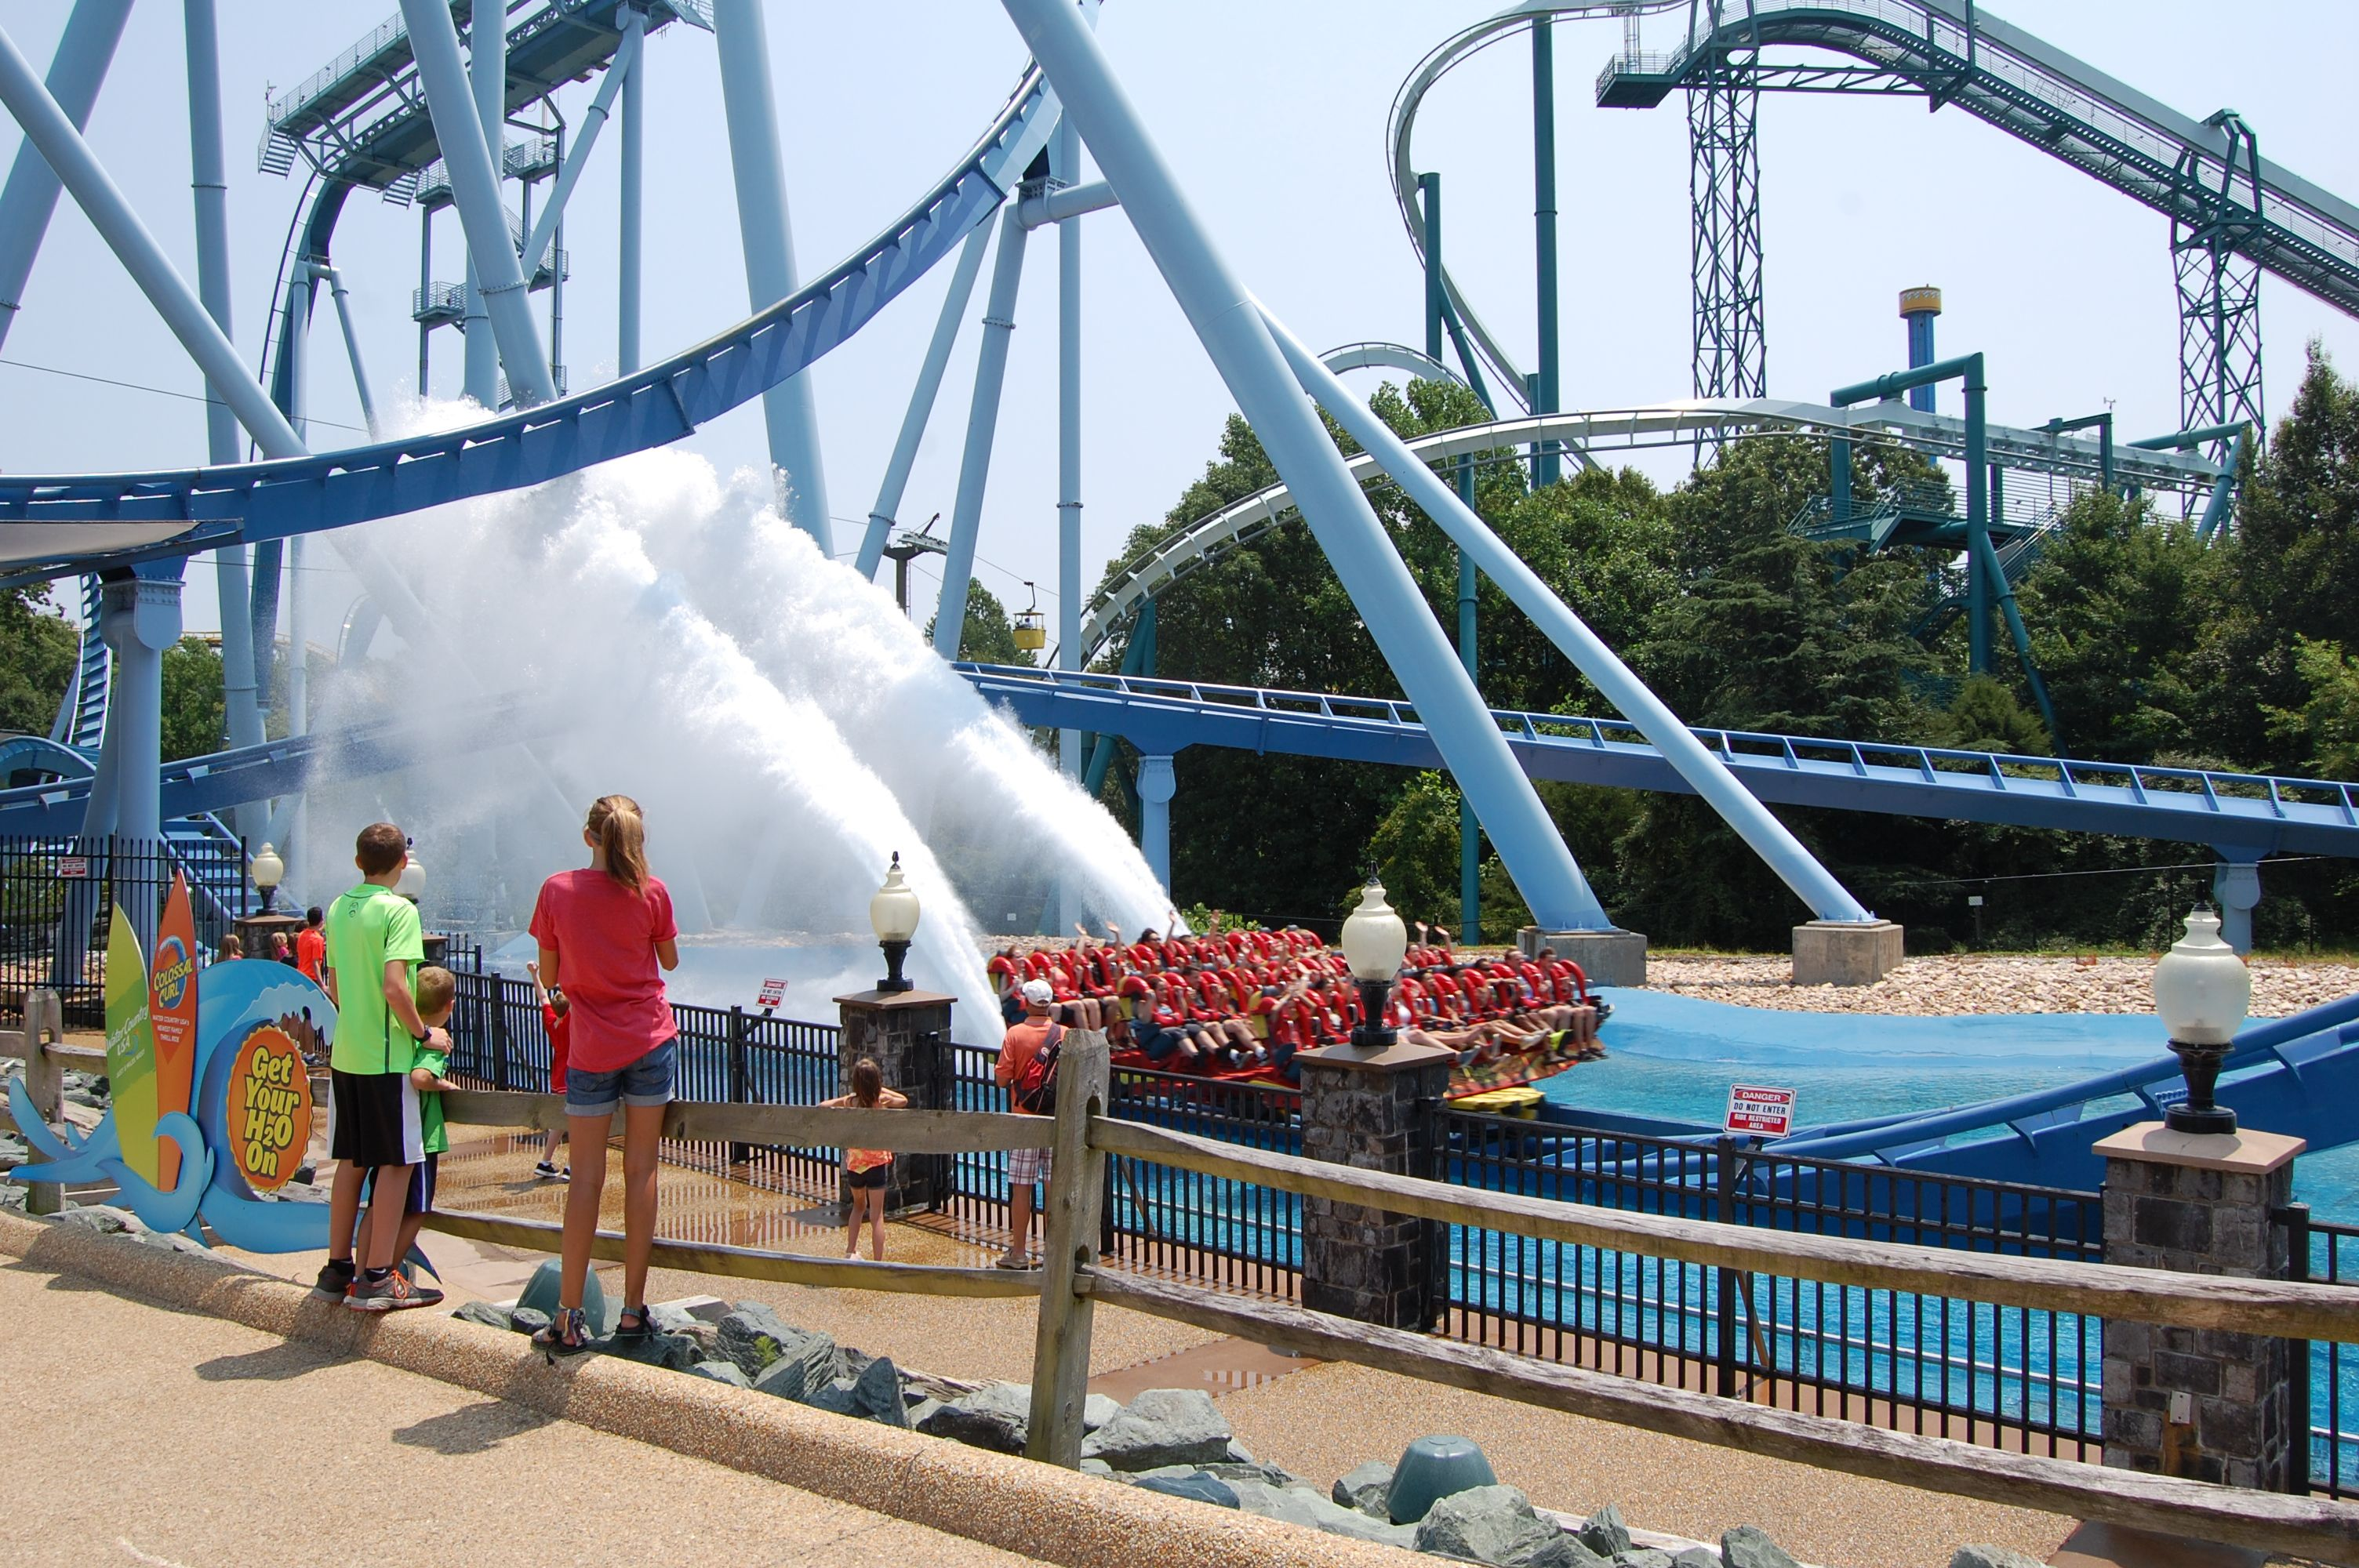 How Much Is Admission To Busch Gardens Williamsburg